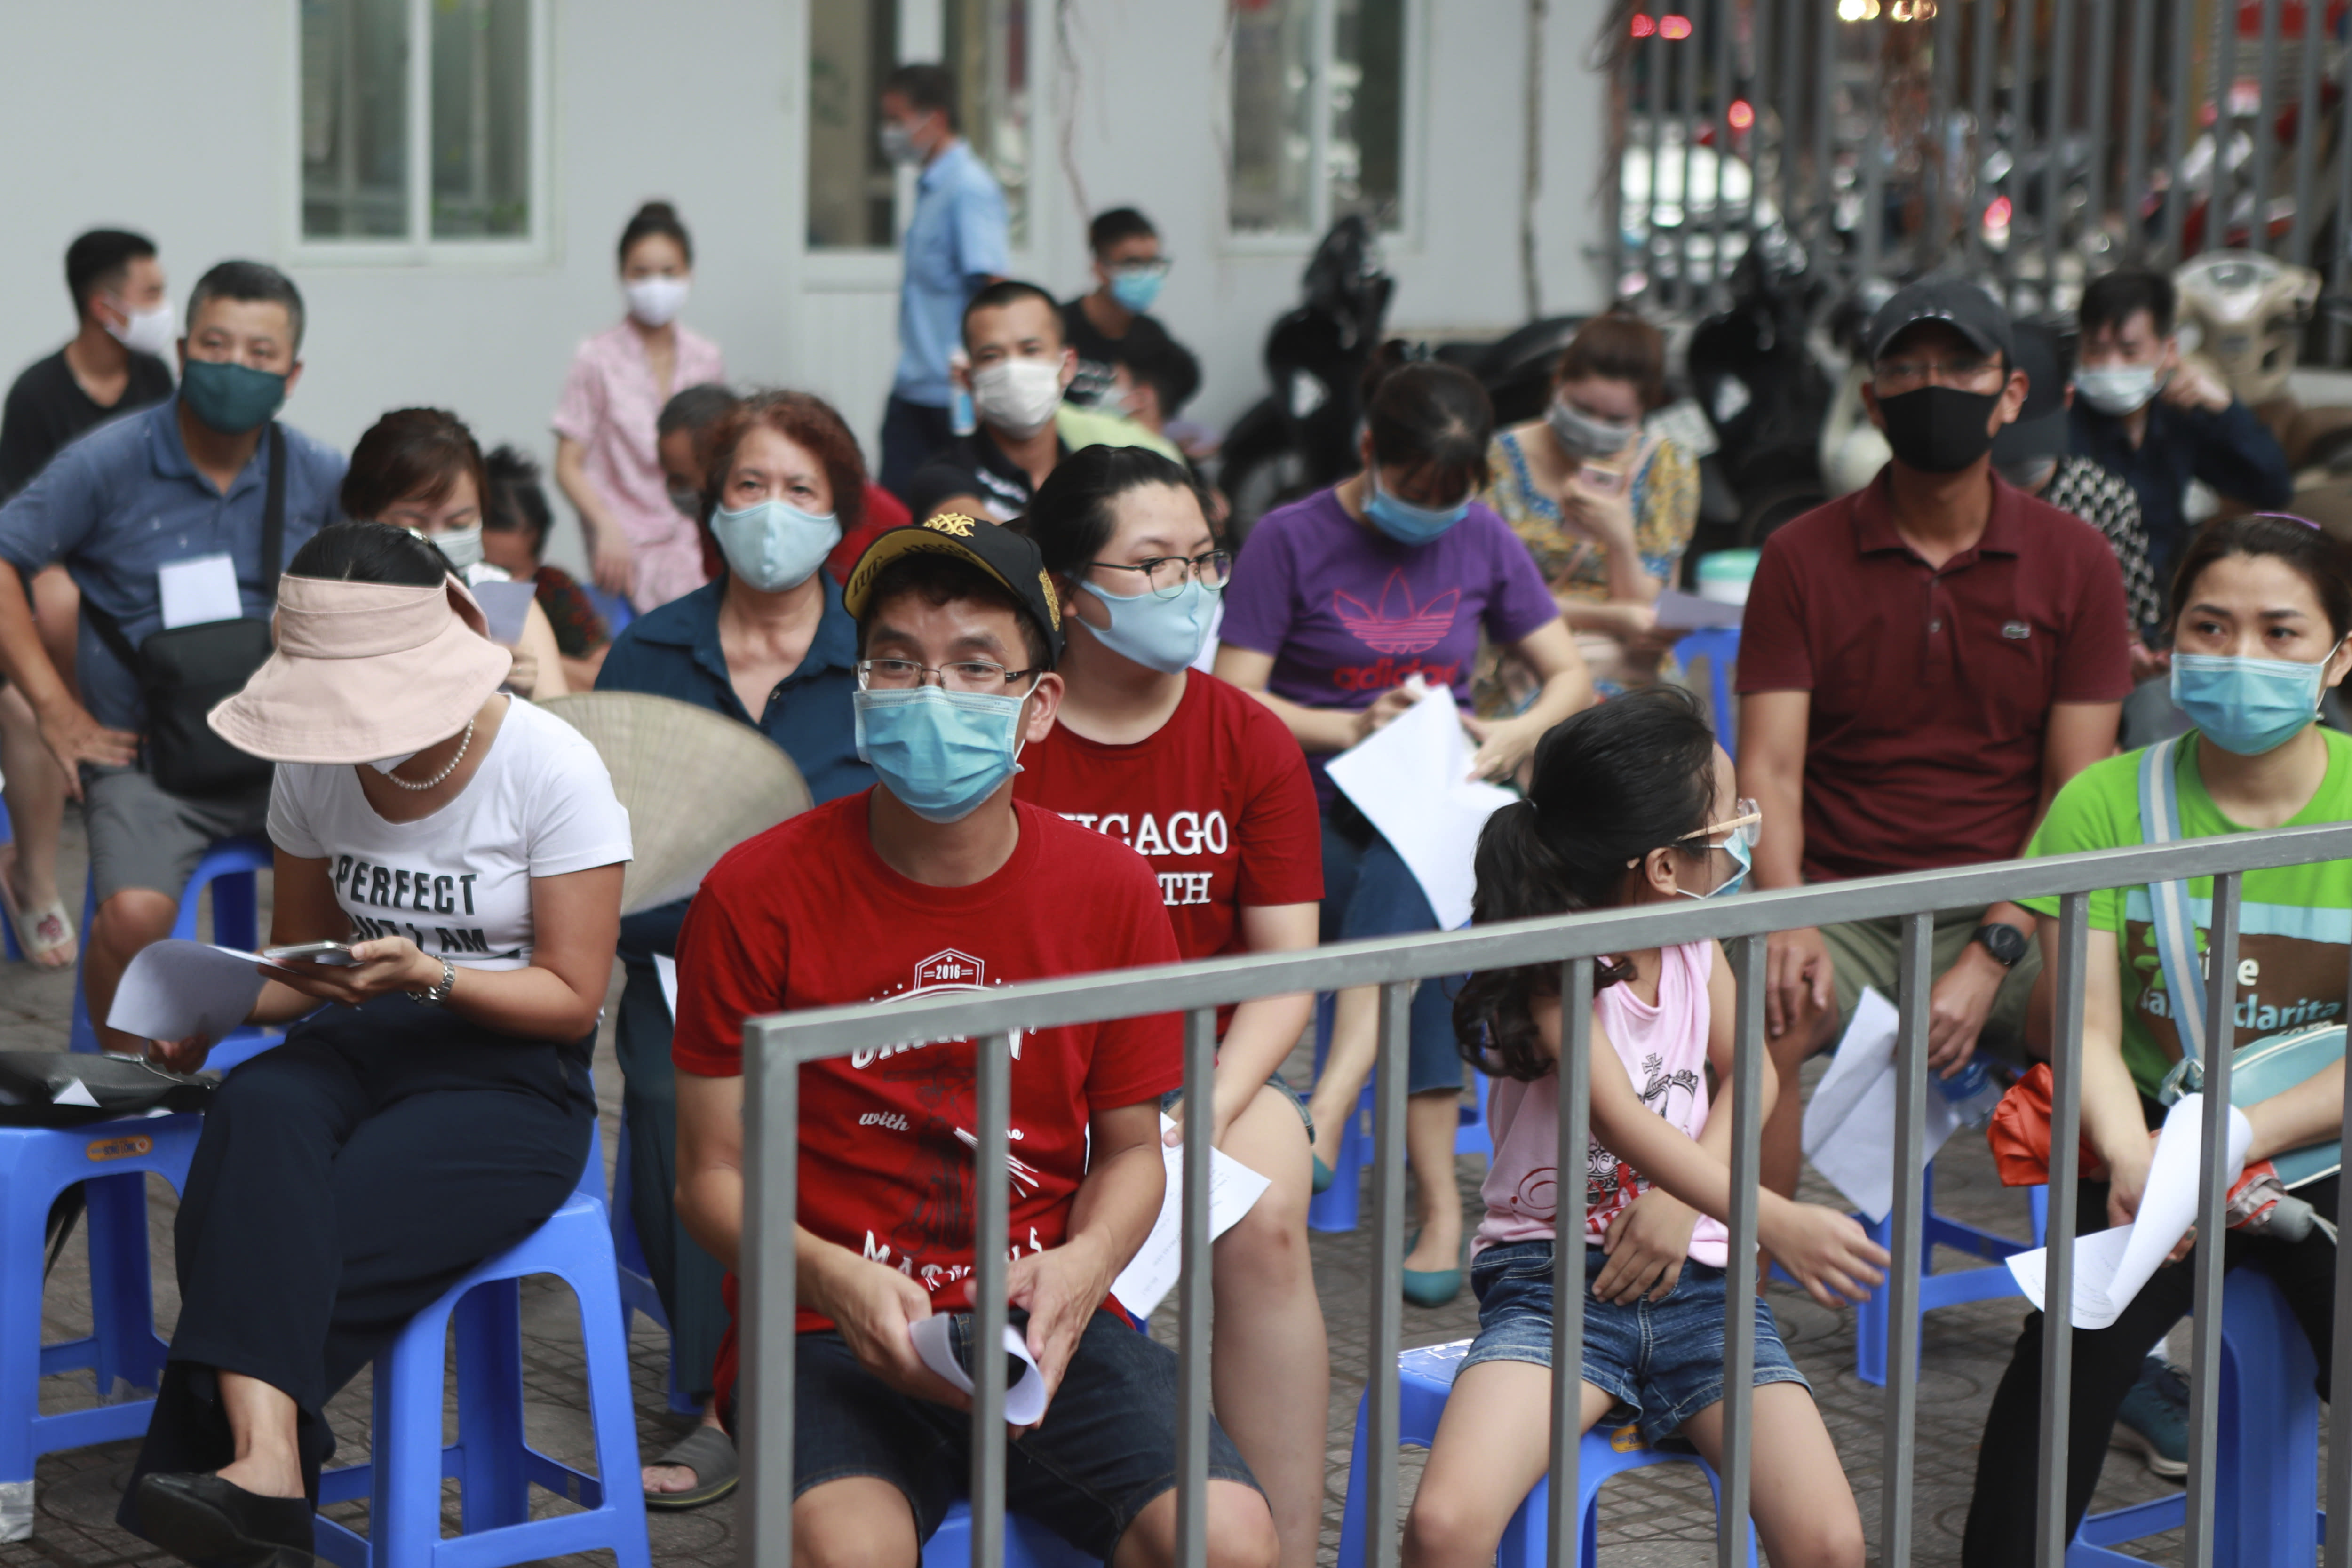 Vietnam records 28 new COVID-19 cases, 586 in total